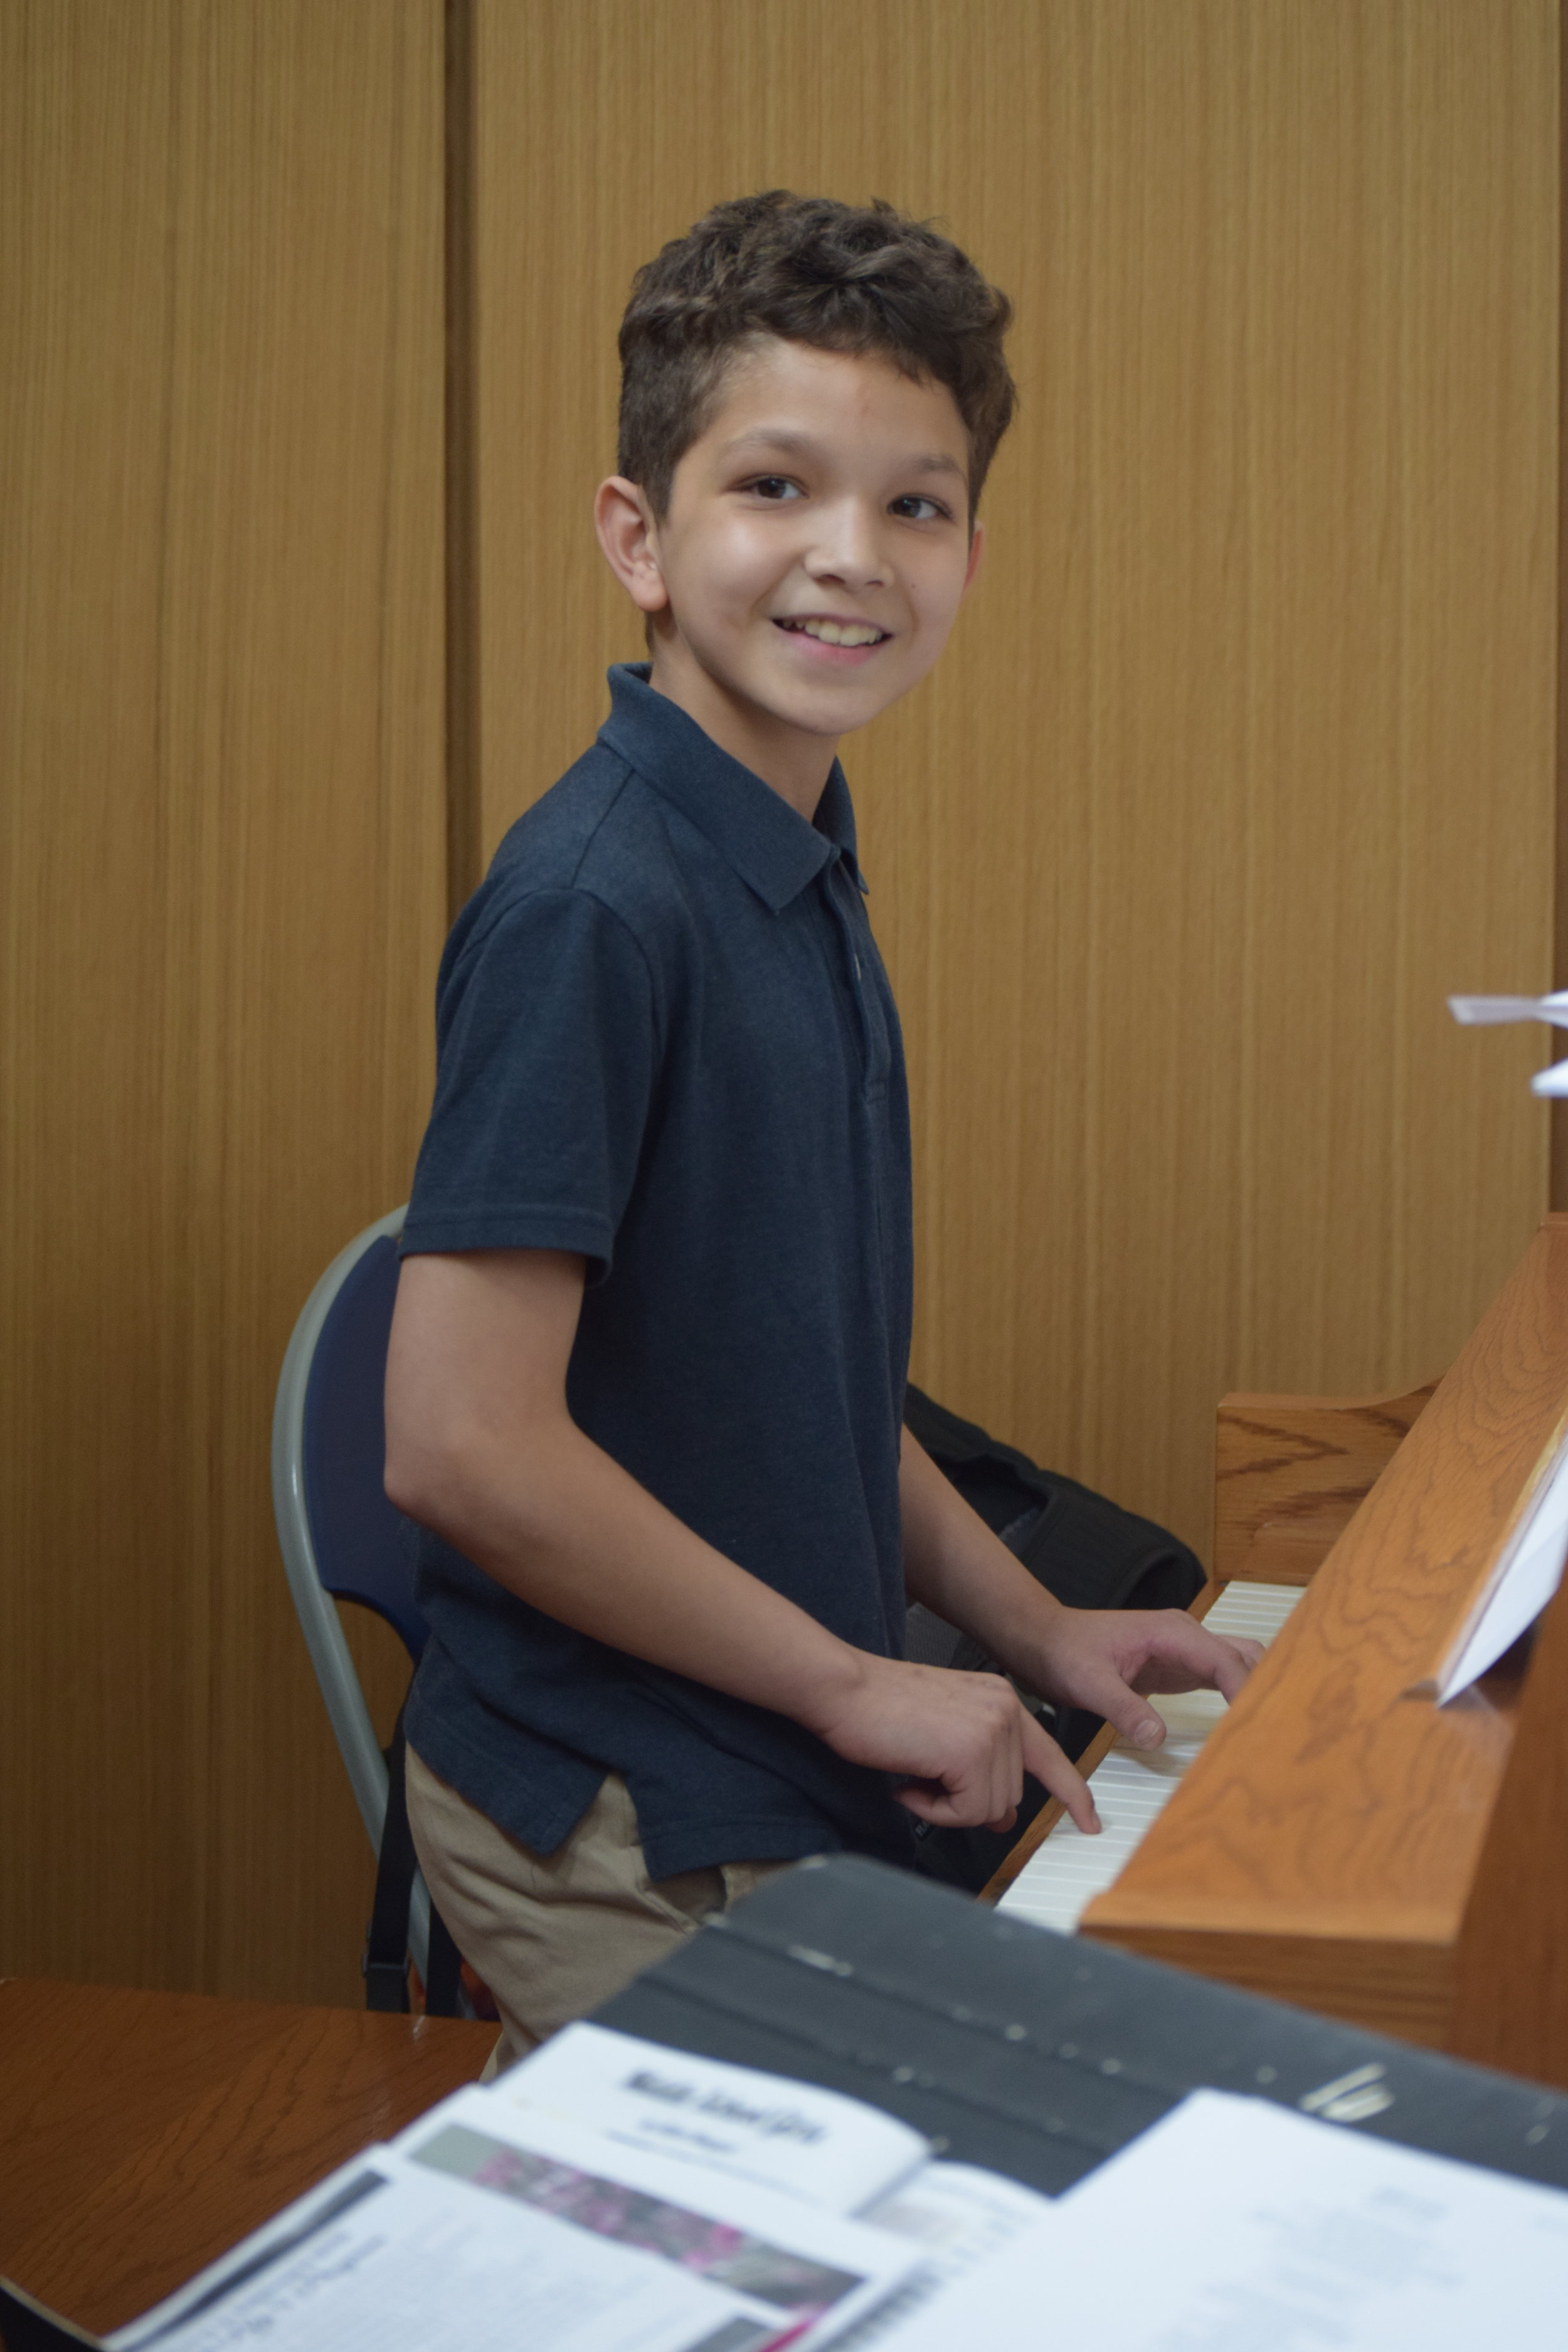 Steven playing the piano for the school.